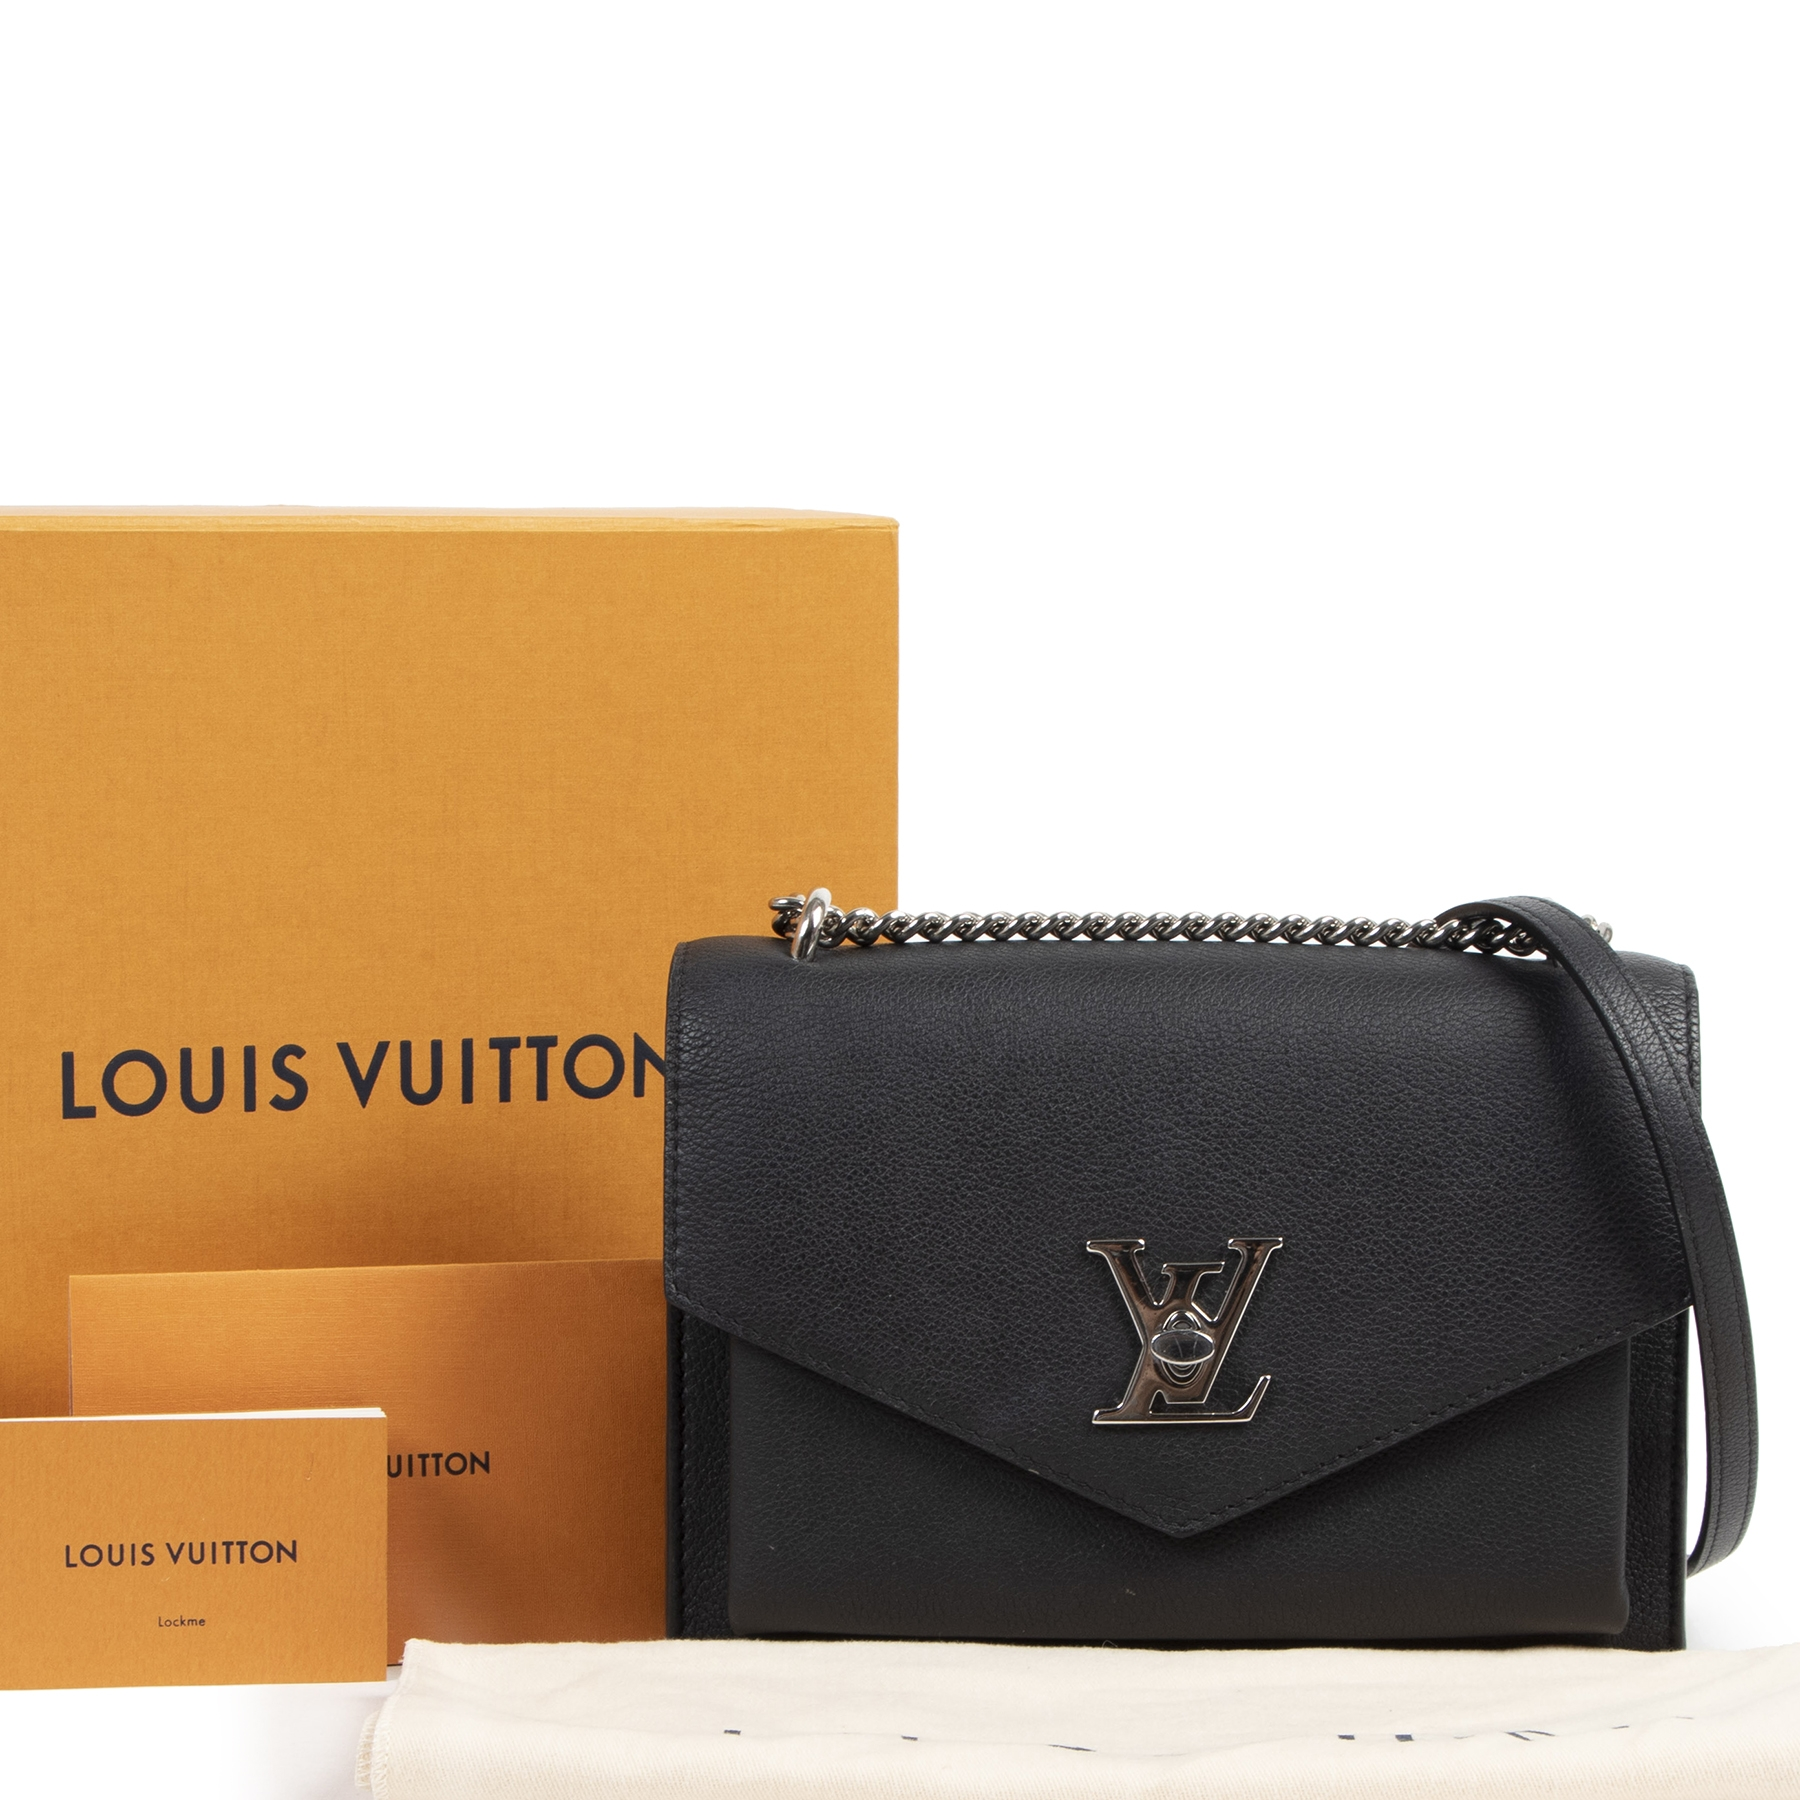 acheter en ligne Louis Vuitton Black Mylockme BB Crossbody Bag